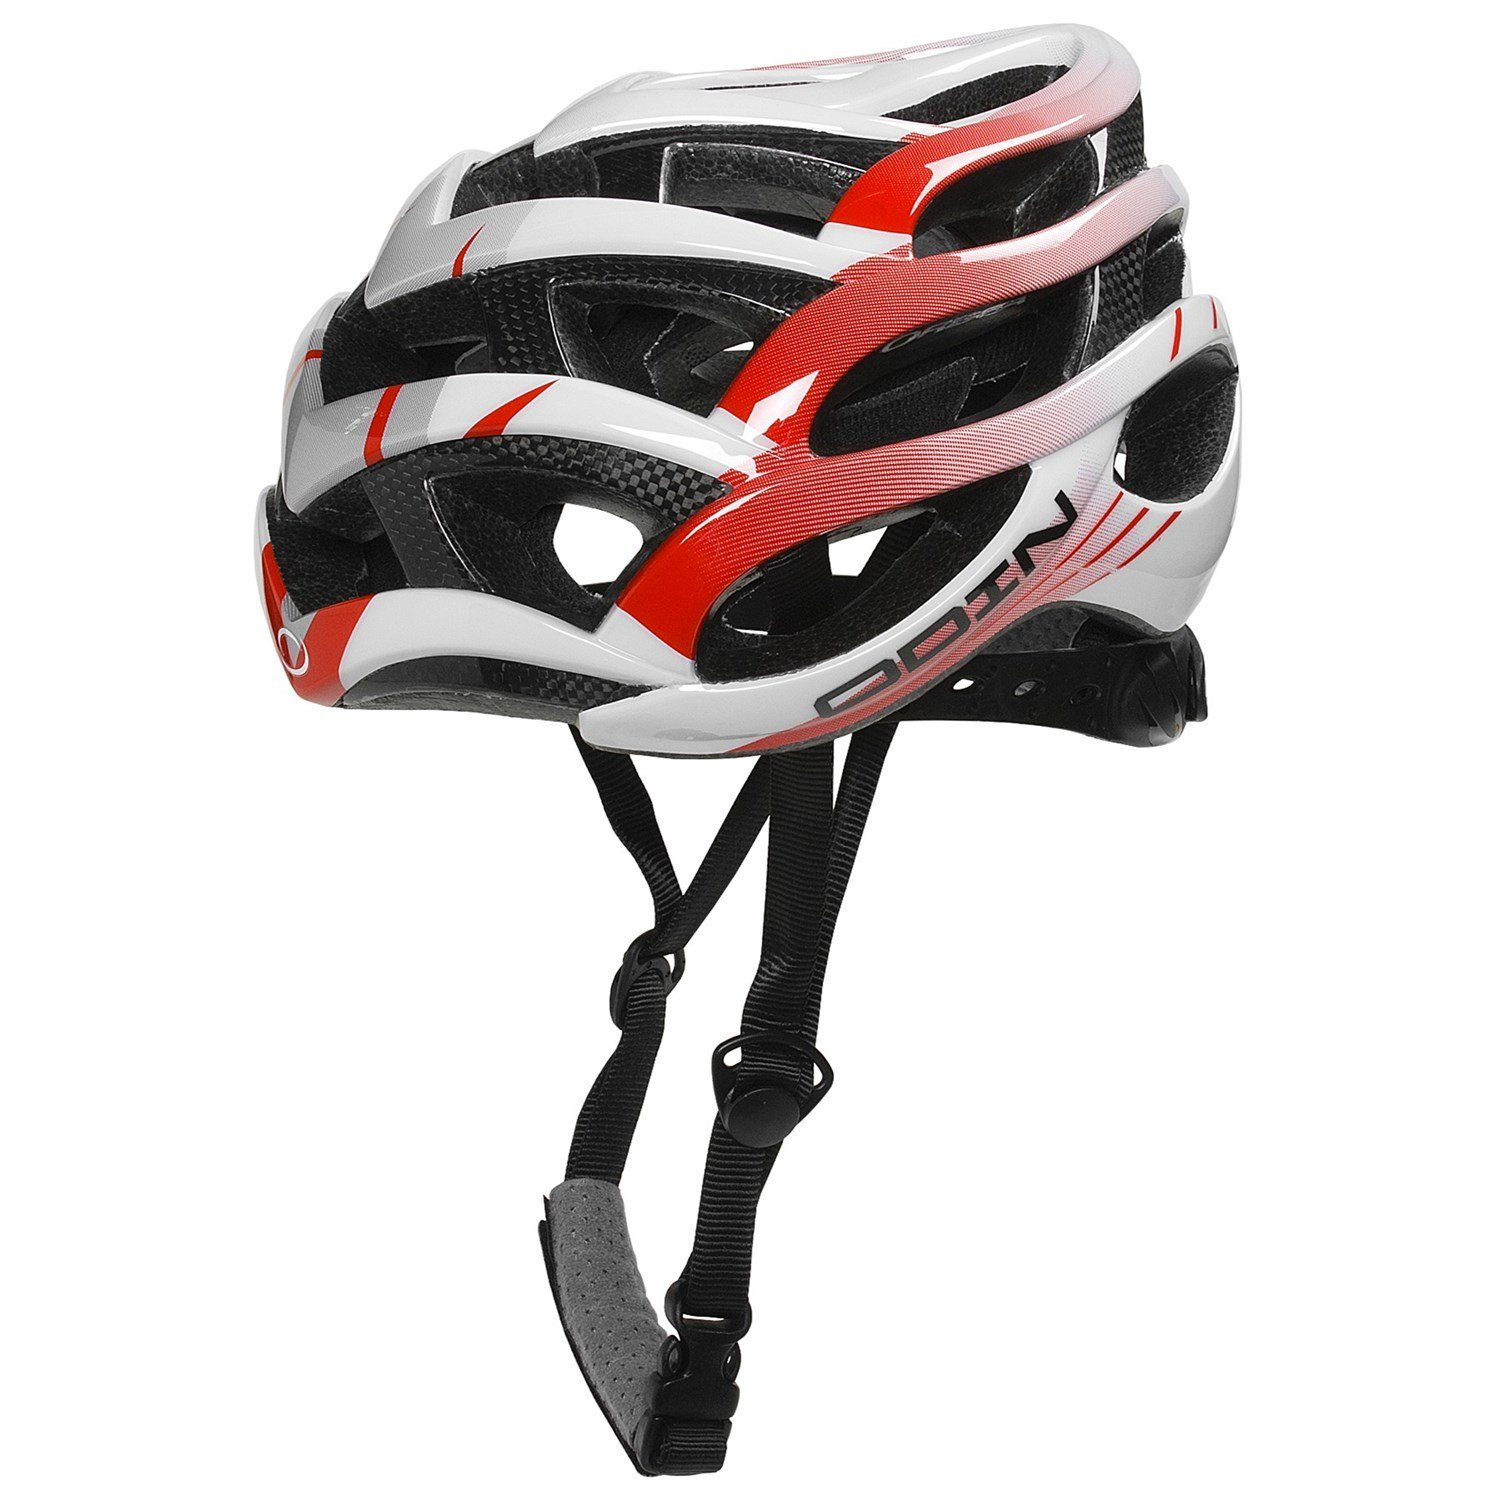 Orbea Bicycle Helmets